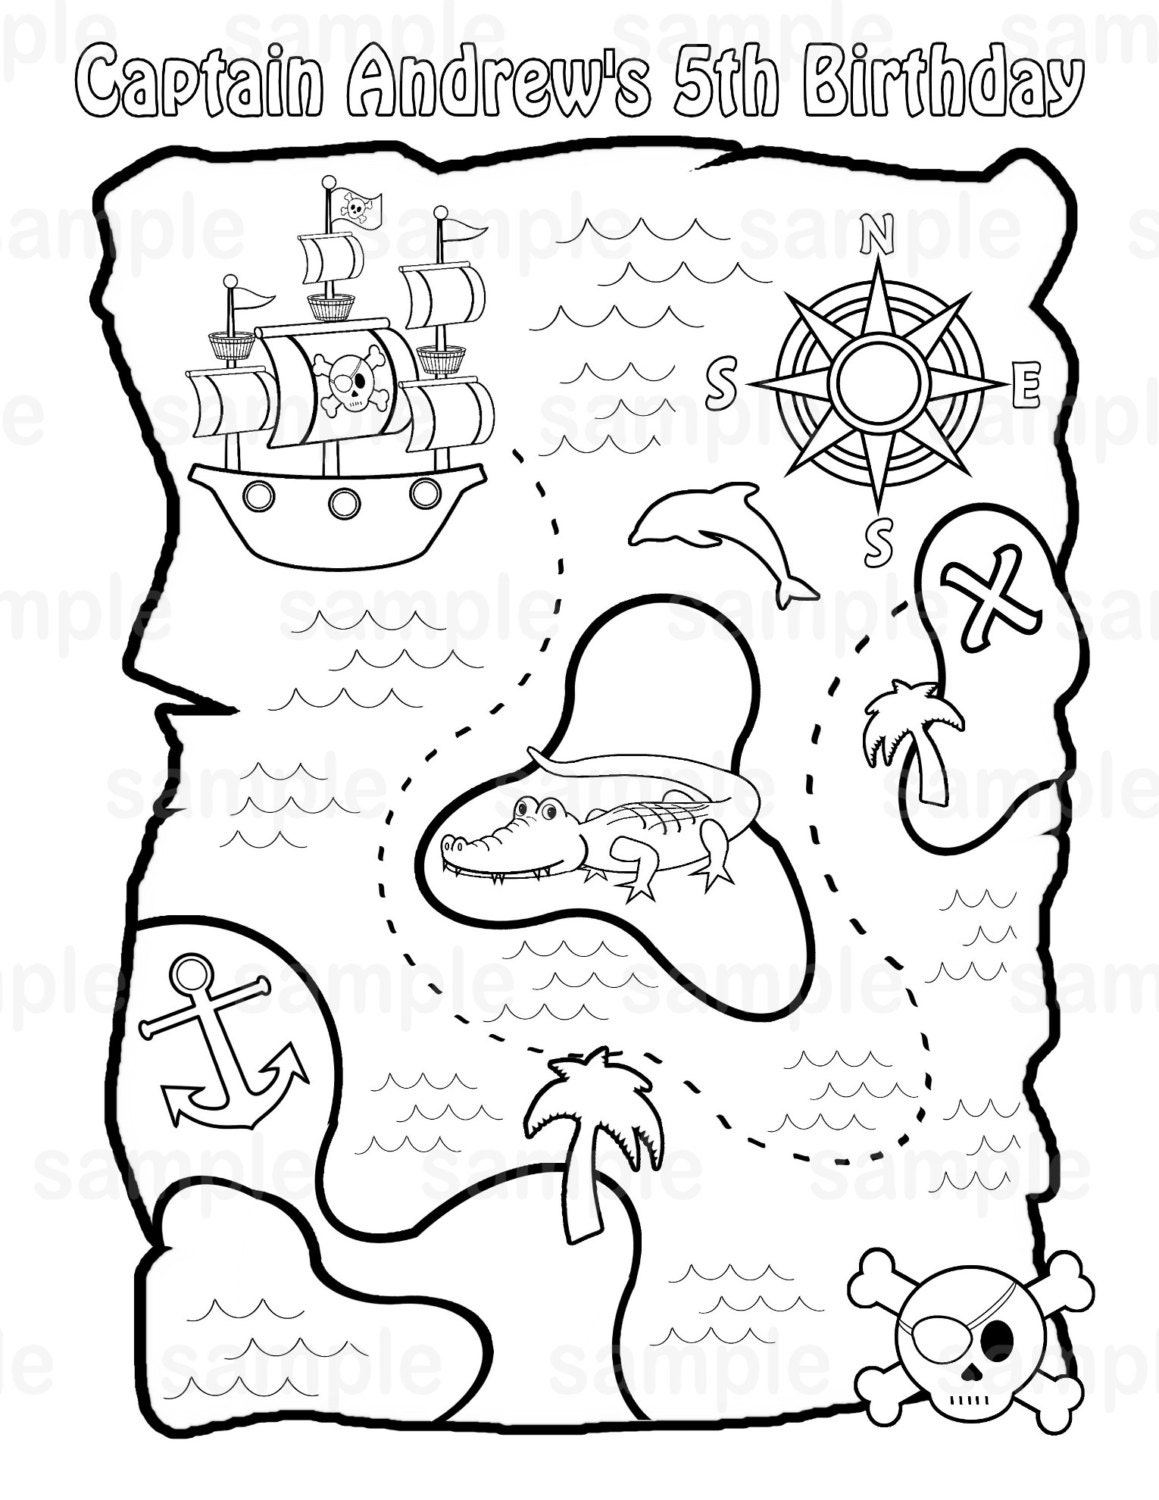 Personalized Printable Pirate Treasure Map Birthday Party Favor ...